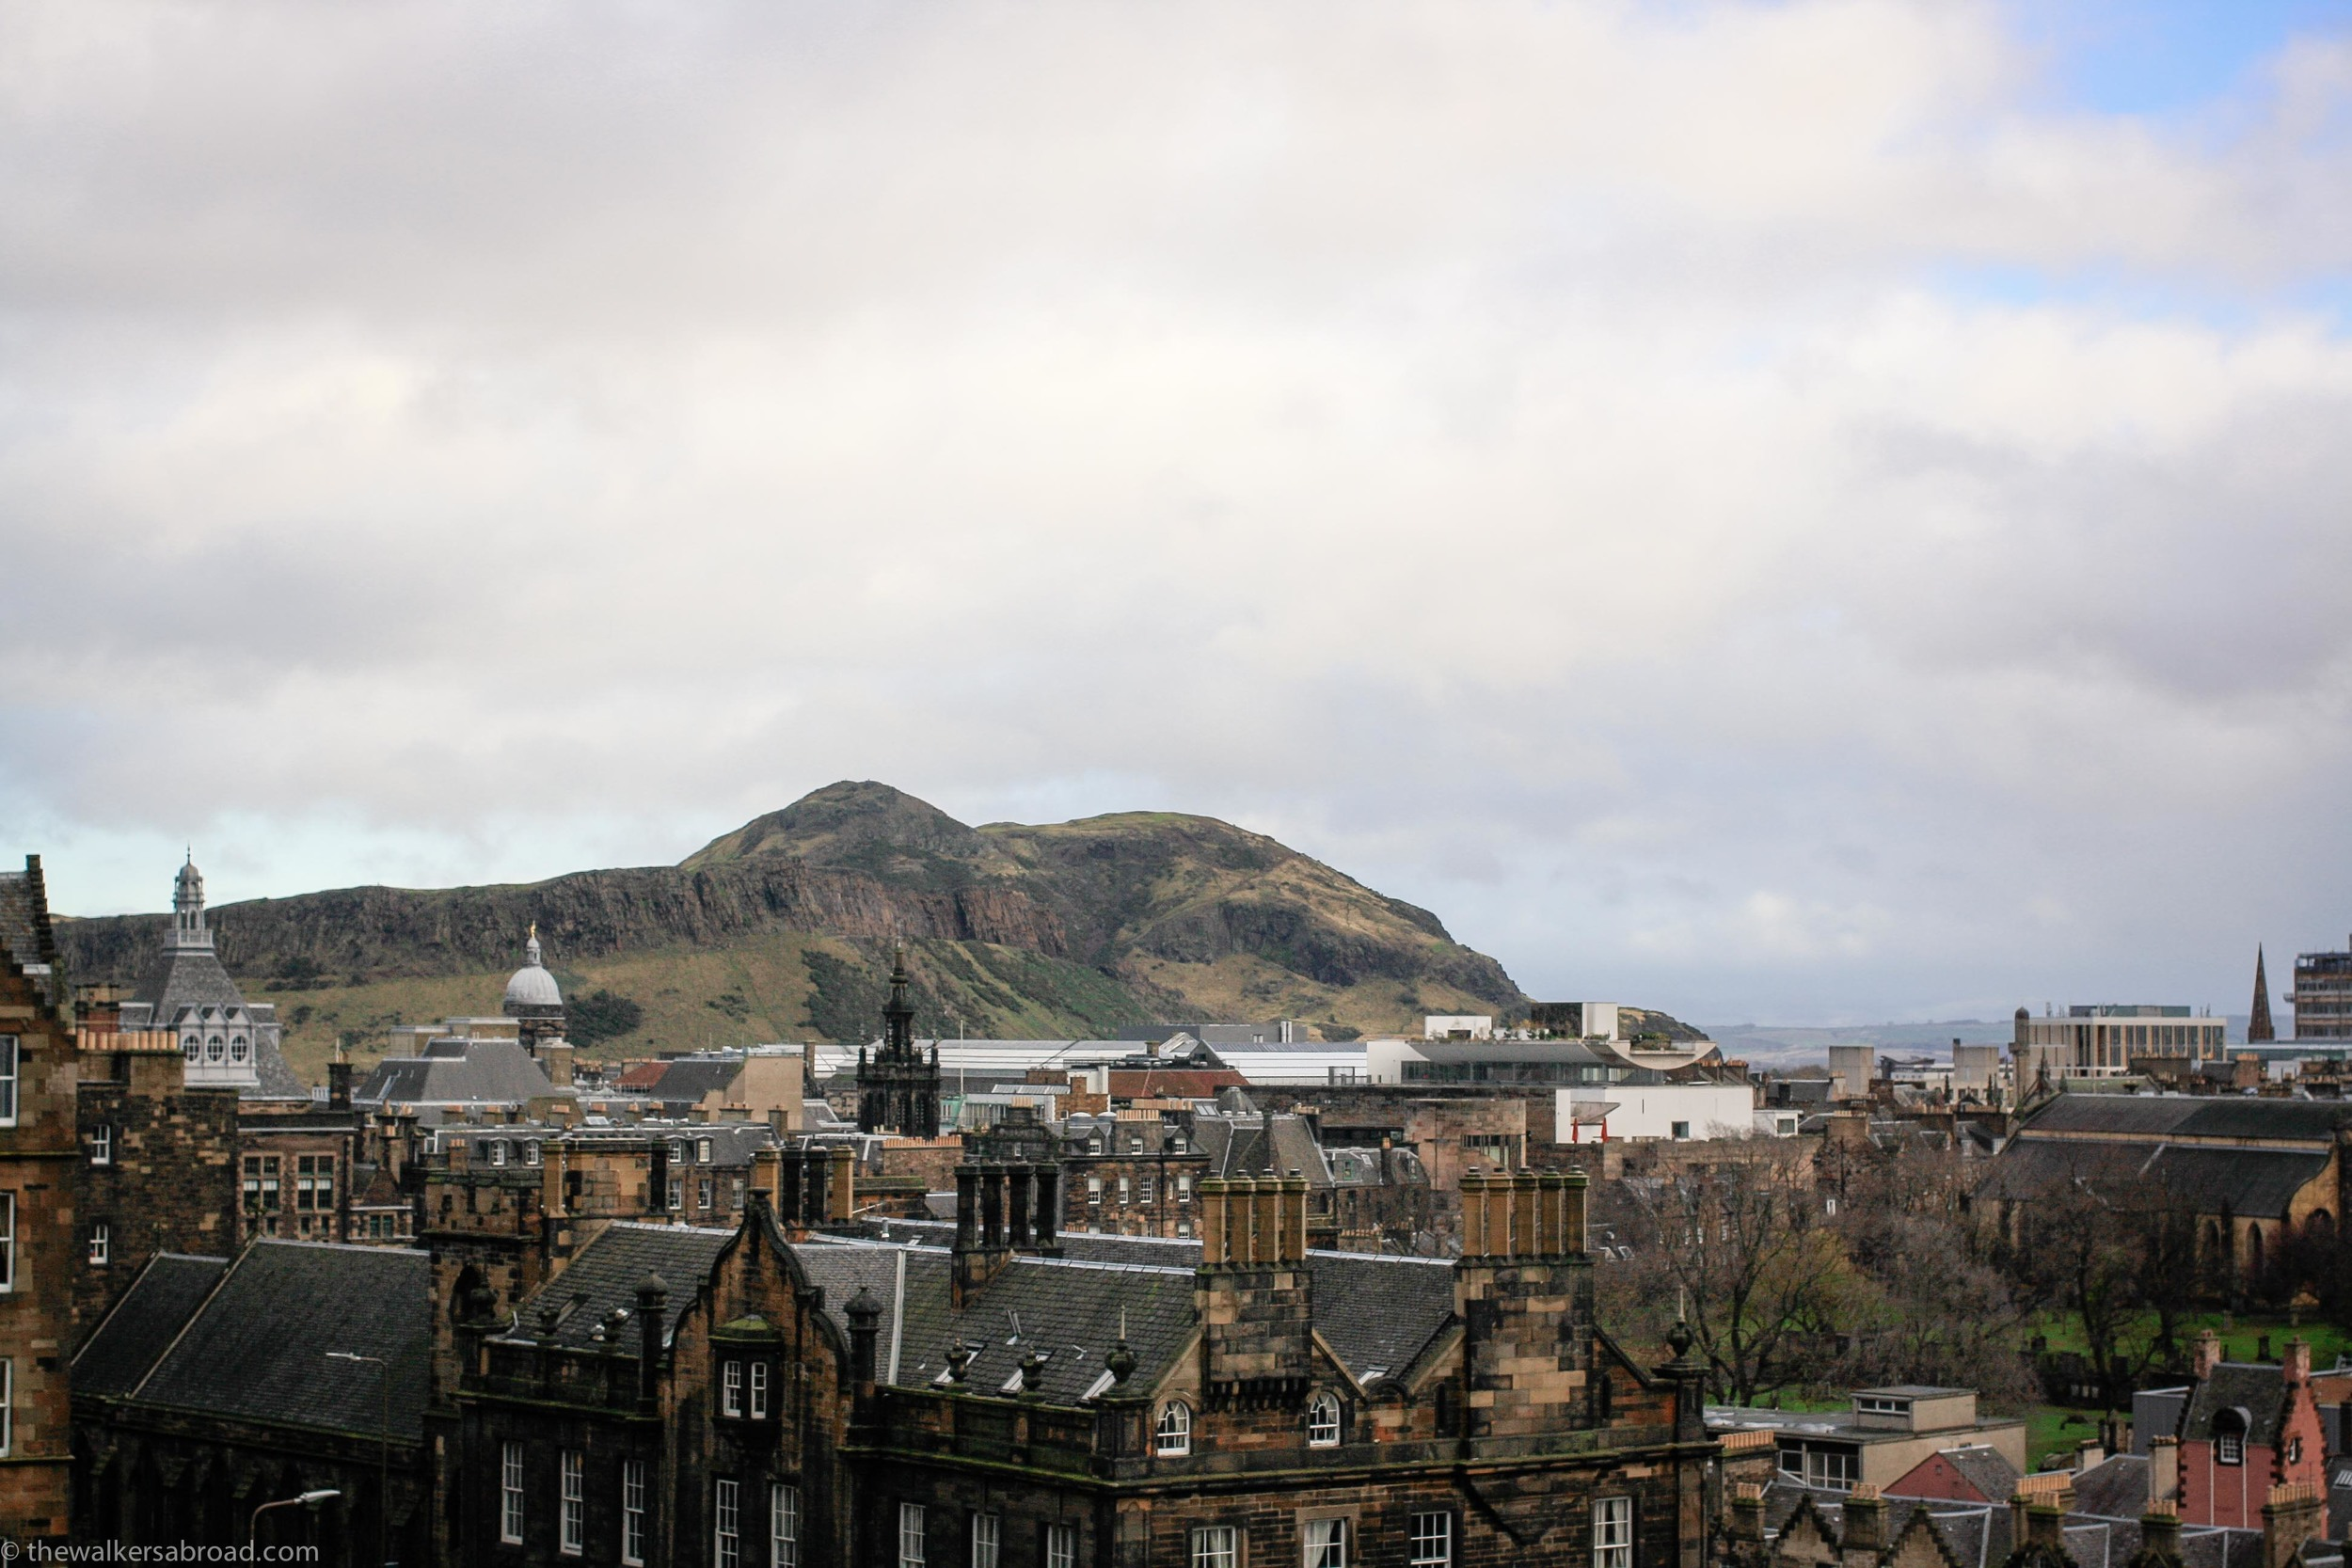 Looking towards Arthur's Seat, part of Holyrood Park and yet another part of Edinburgh we need to explore.